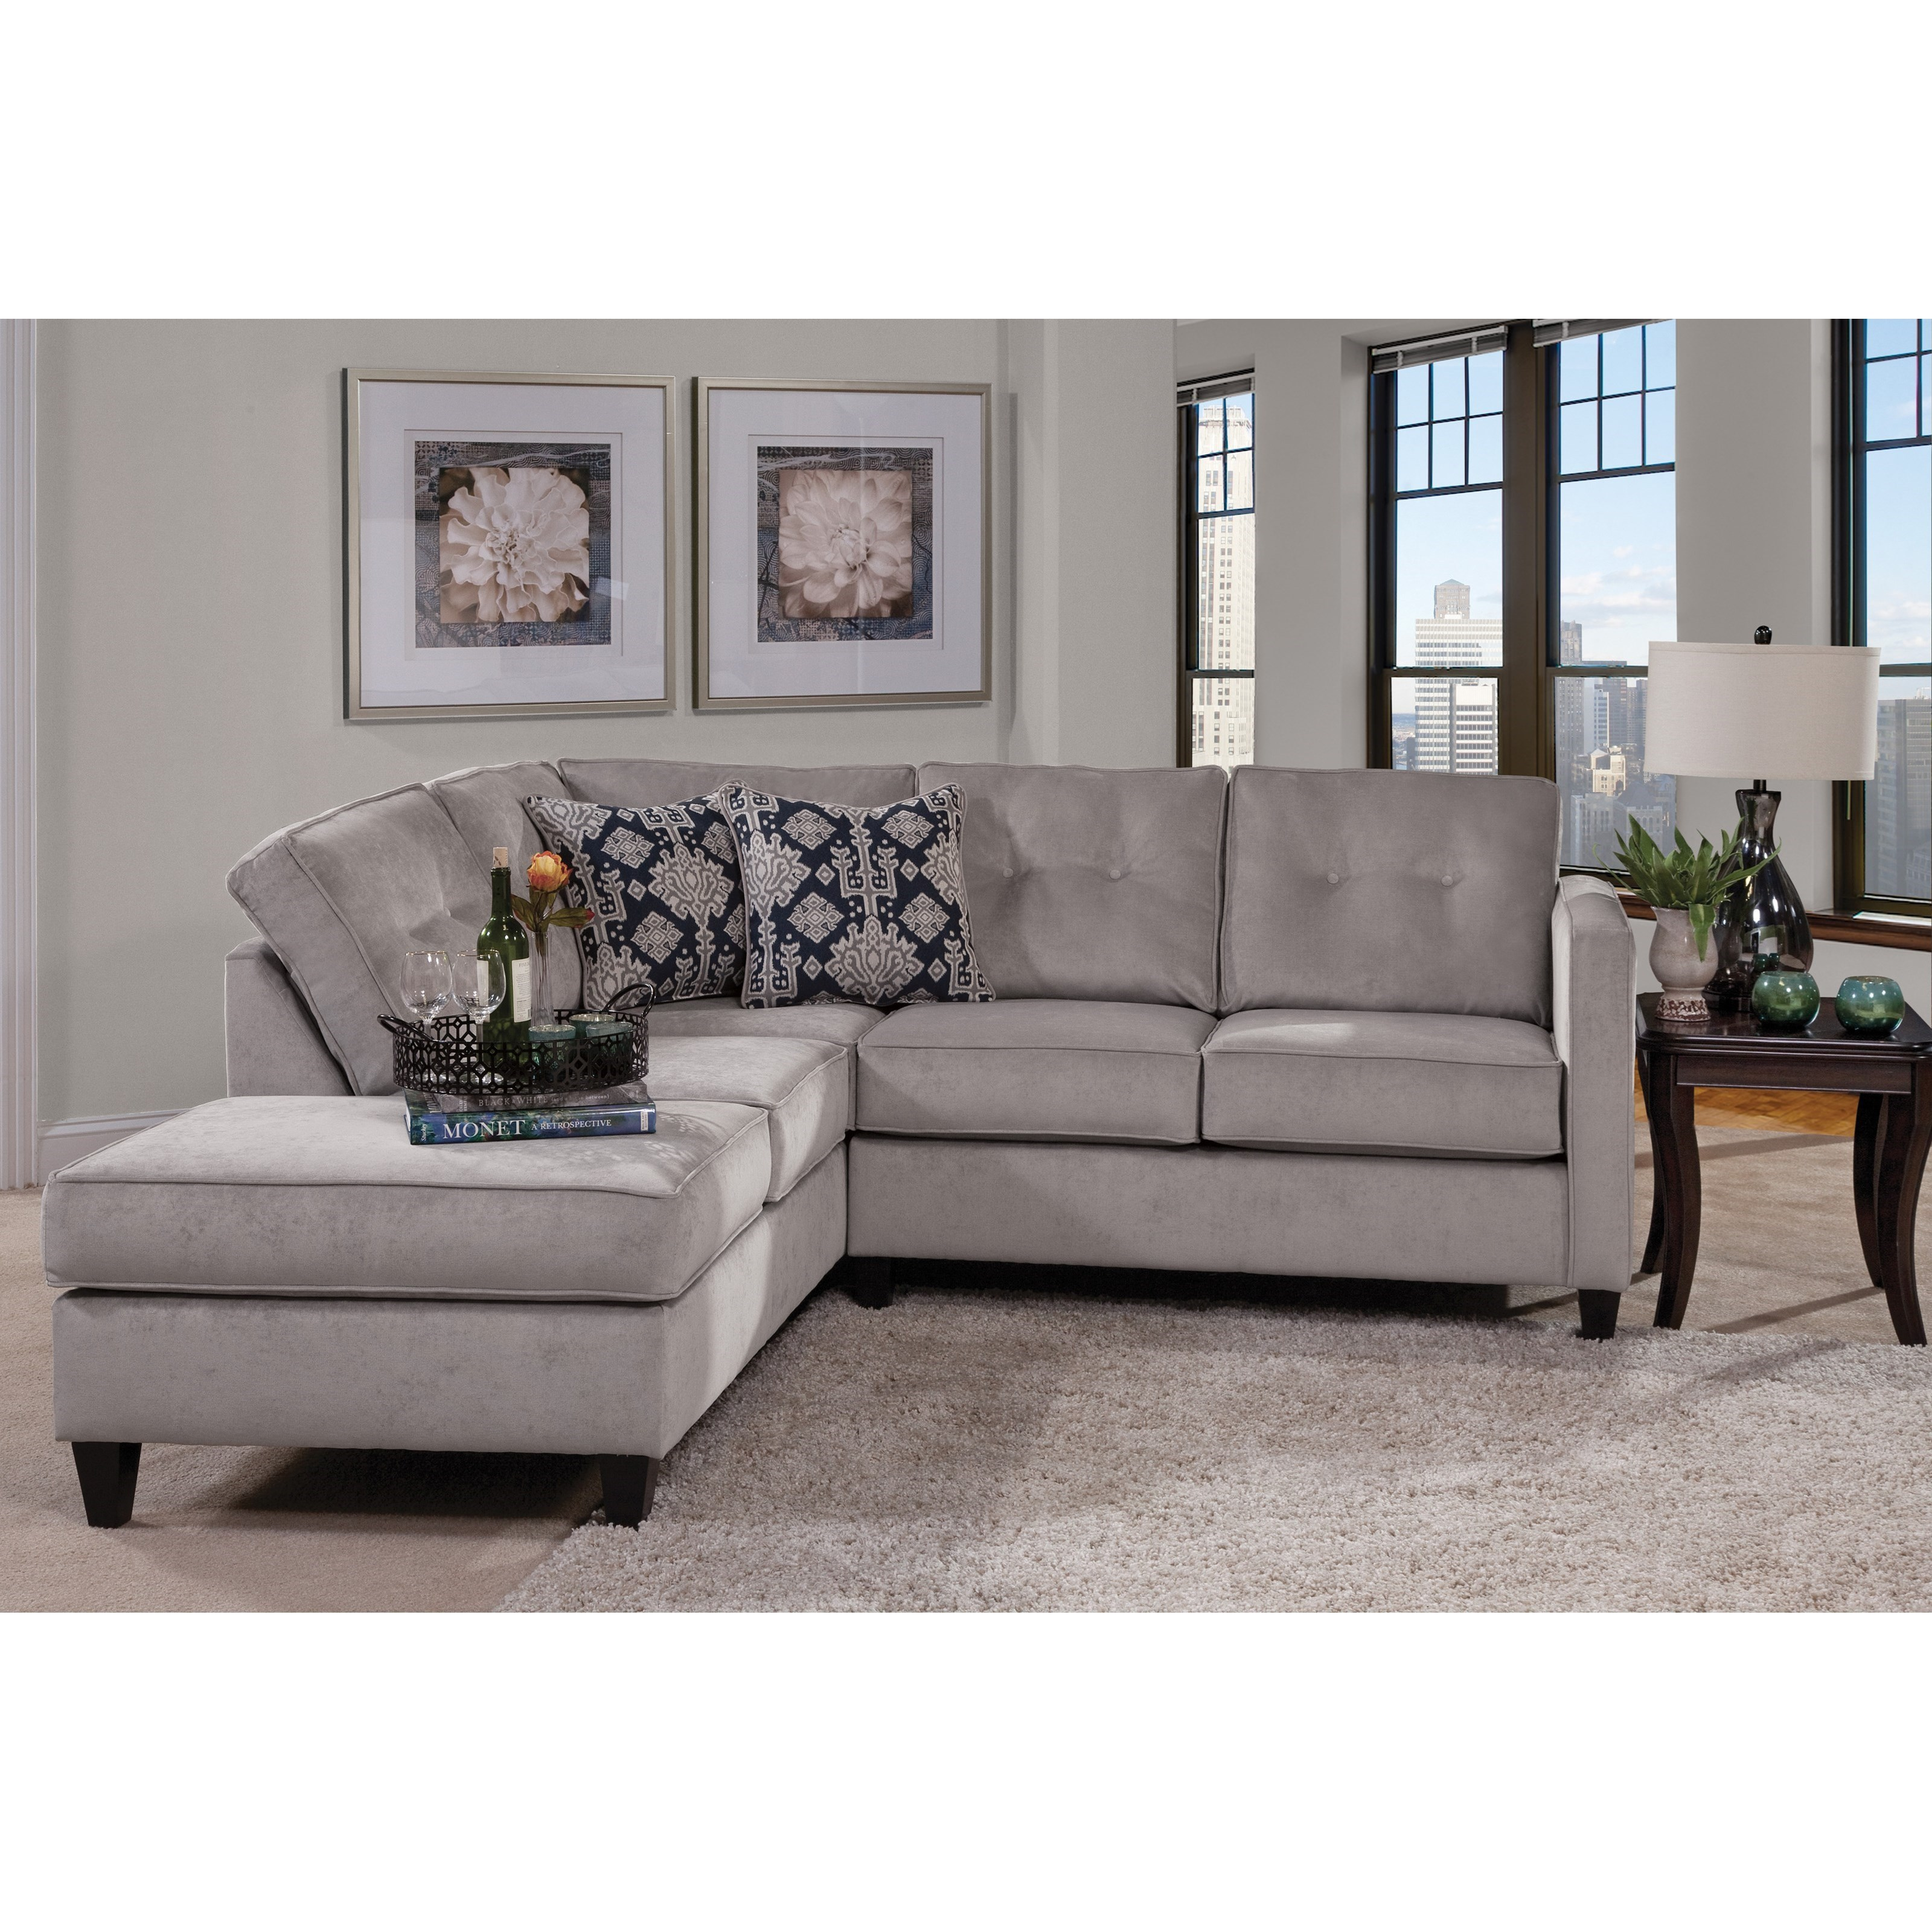 Serta Upholstery by Hughes 1375 Contemporary Sectional - Item Number: 1375SEC